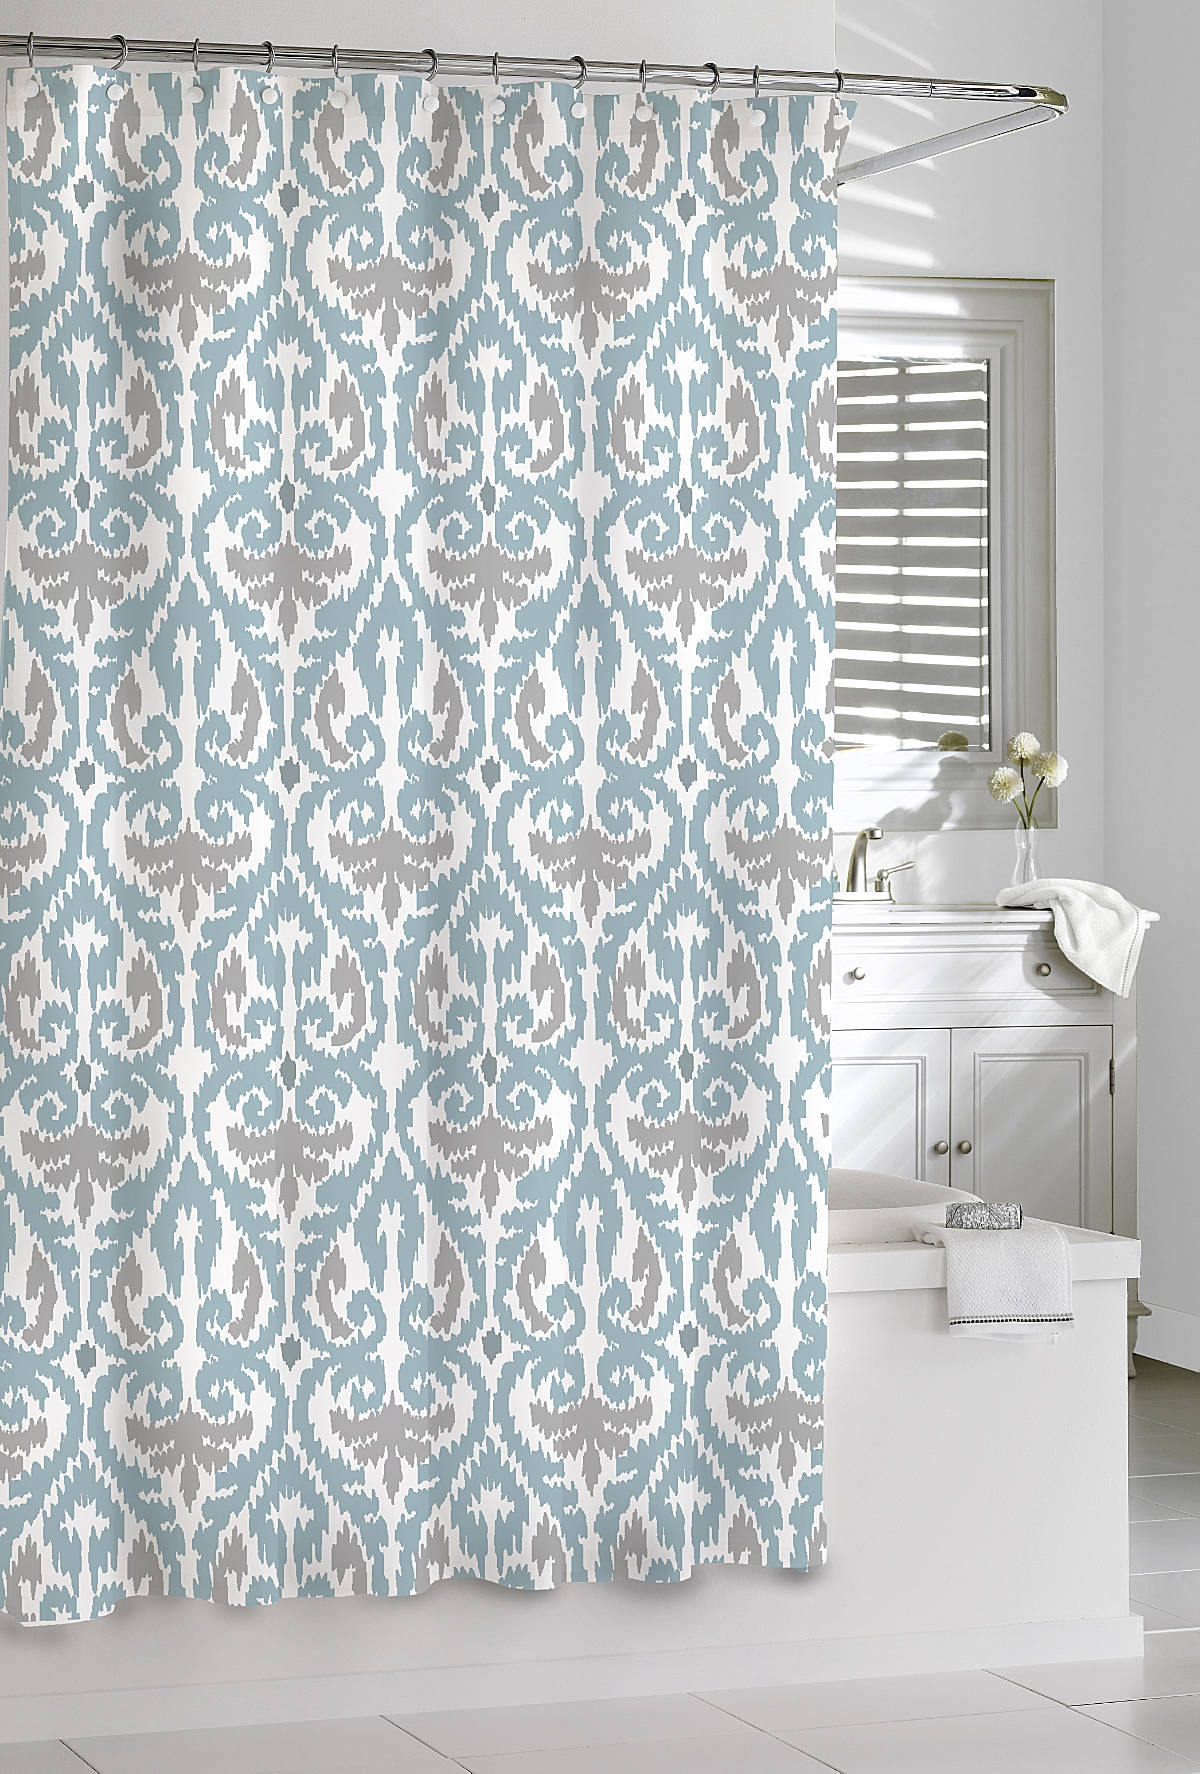 teal and gray shower curtain. Teal Grey And White Shower Curtain Design Throughout  Proportions 1200 X 1774 Curtains Ideas